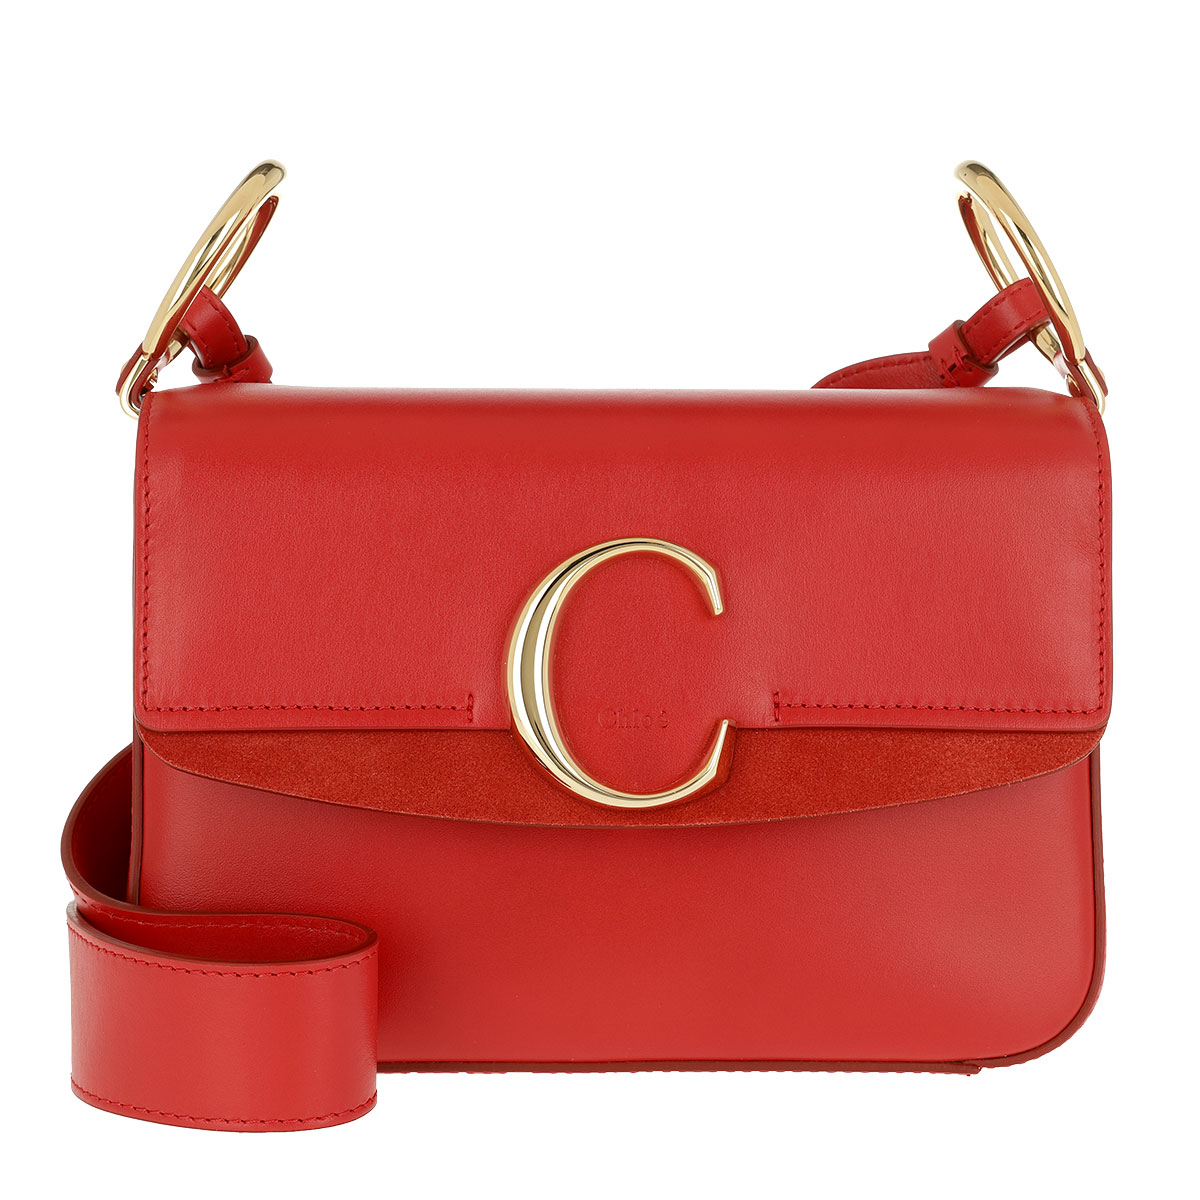 Chloé Satchel Bag - Double Carry Small Shoulder Bag Leather Plaid Red - in rot - für Damen